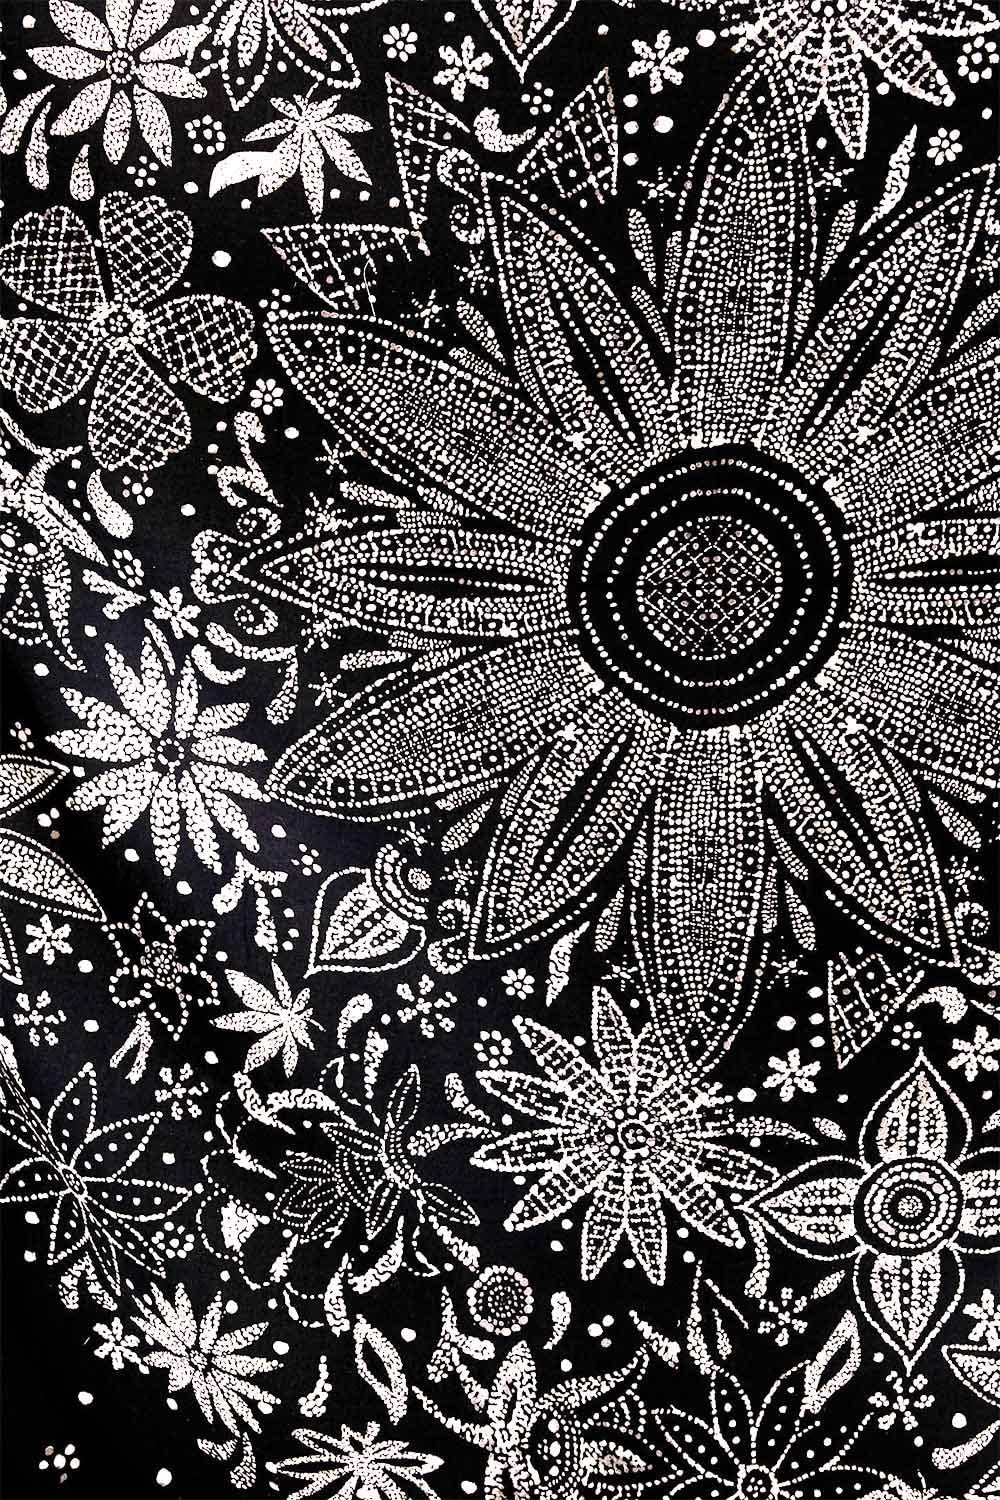 70/×90 inches Neasow Bohemian Tapestry Wall Hanging,Black and White Floral Tapestry with Dotted Daisy Medallion Print Bedroom Boho Hippie Home Decor